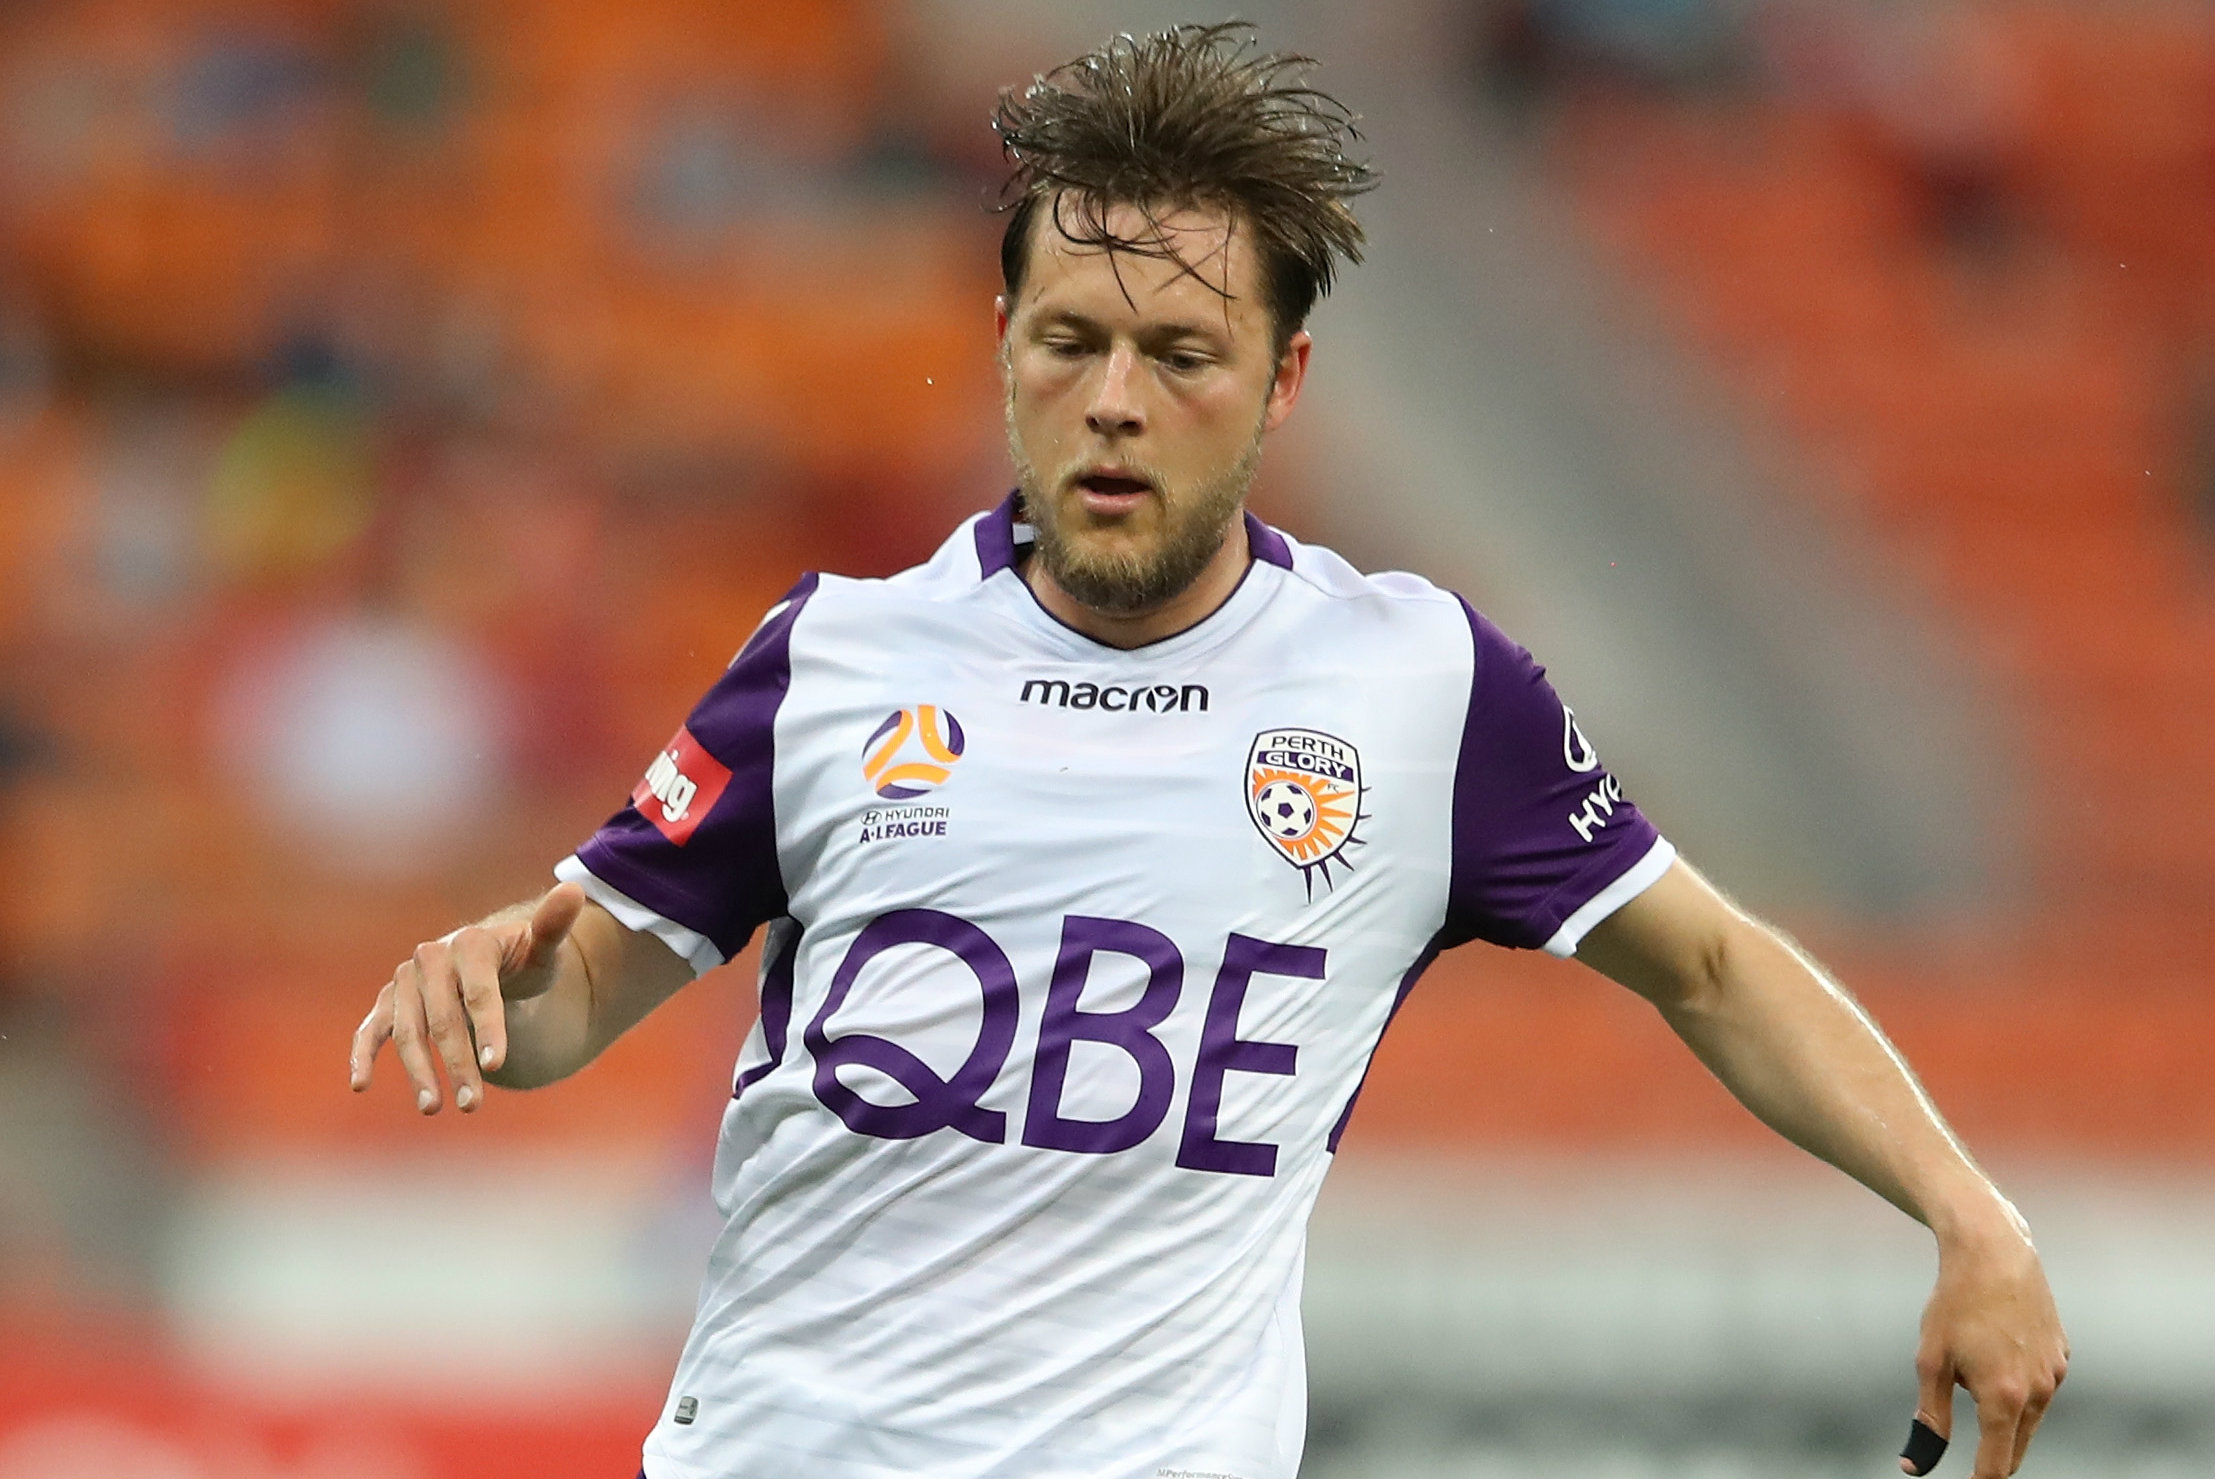 When he's not concerning himself with environmental issues, Chris Harold is a handy winger with Perth Glory.